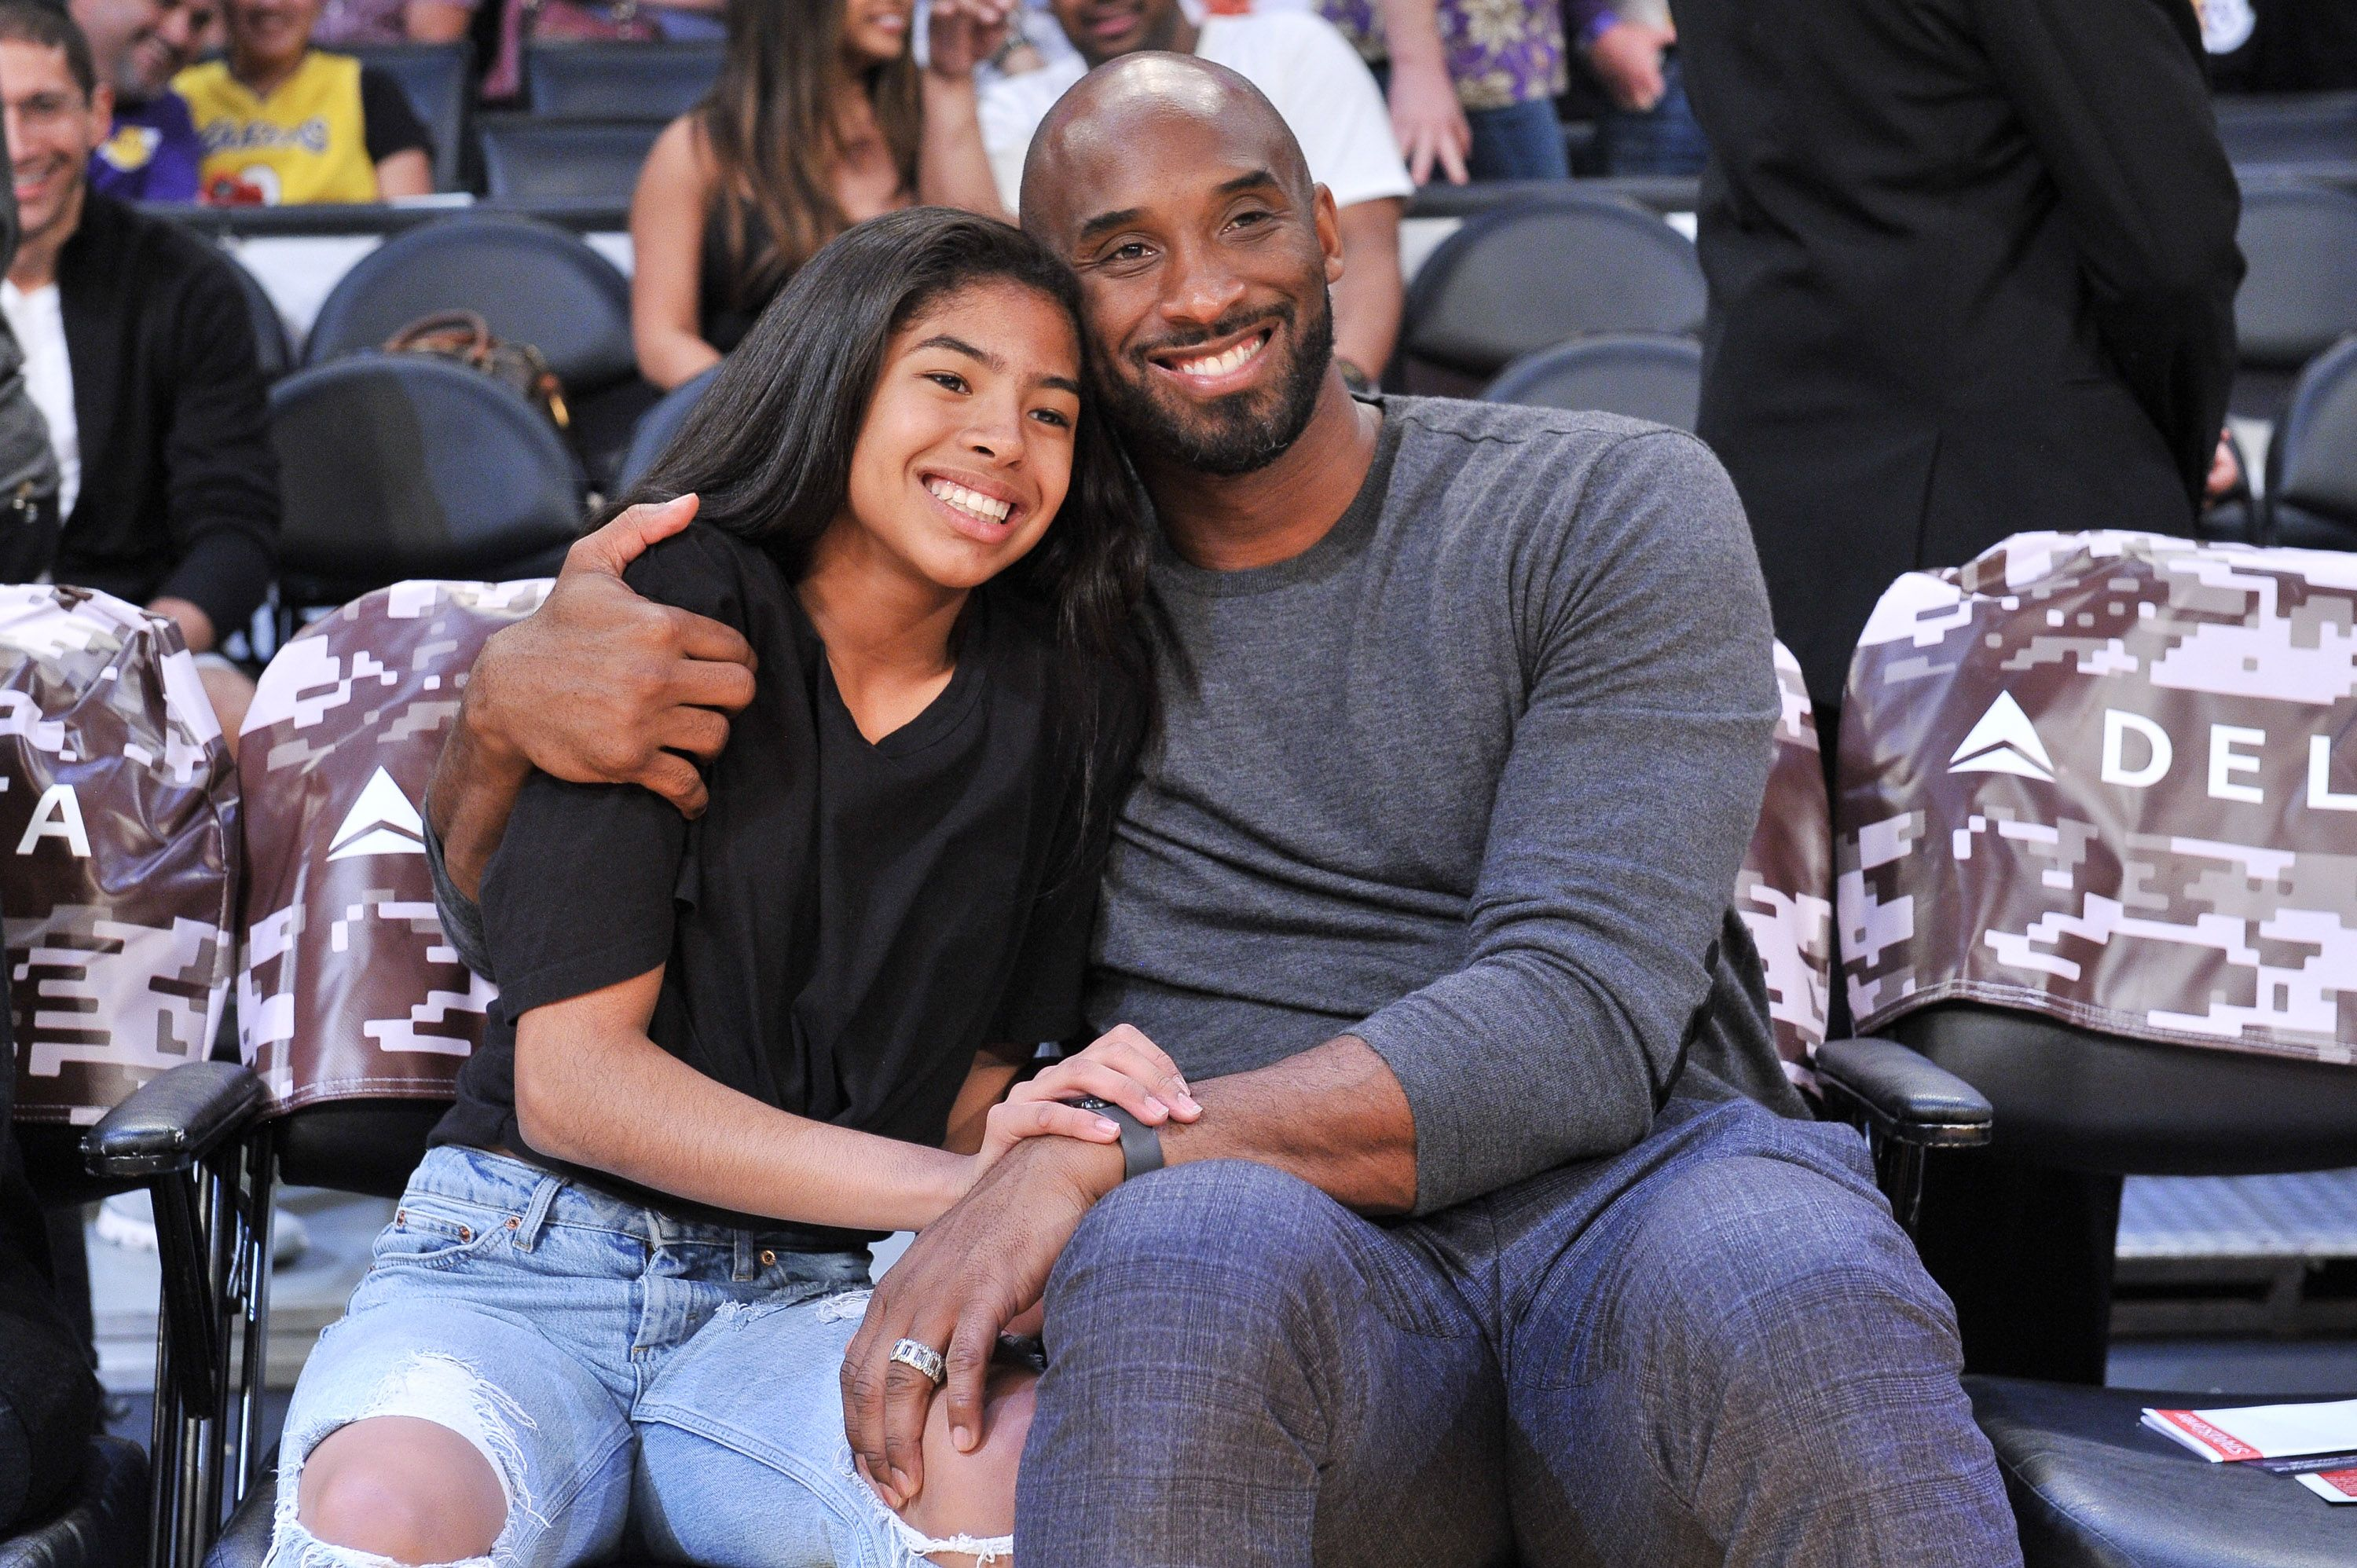 Kobe Bryant and His 13-Year-Old Daughter, Gianna, Have Died in a Helicopter Crash